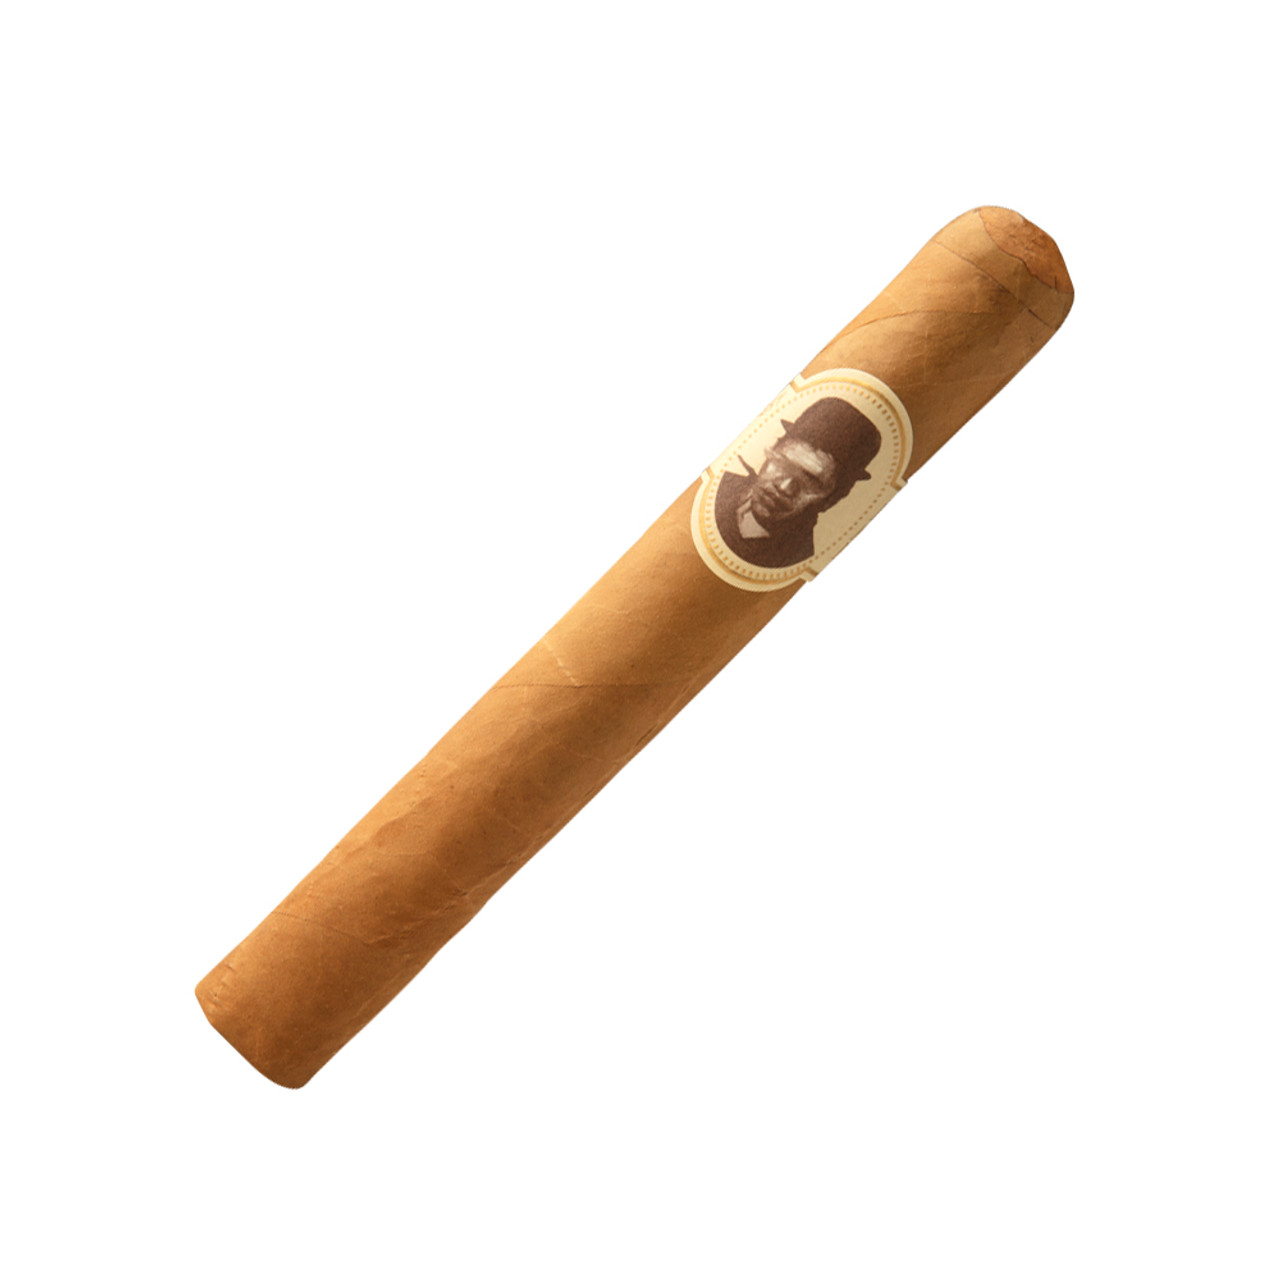 Blind Man's Bluff by Caldwell Cigar Co. Connecticut Toro Cigars - 6 x 52 (Box of 20)